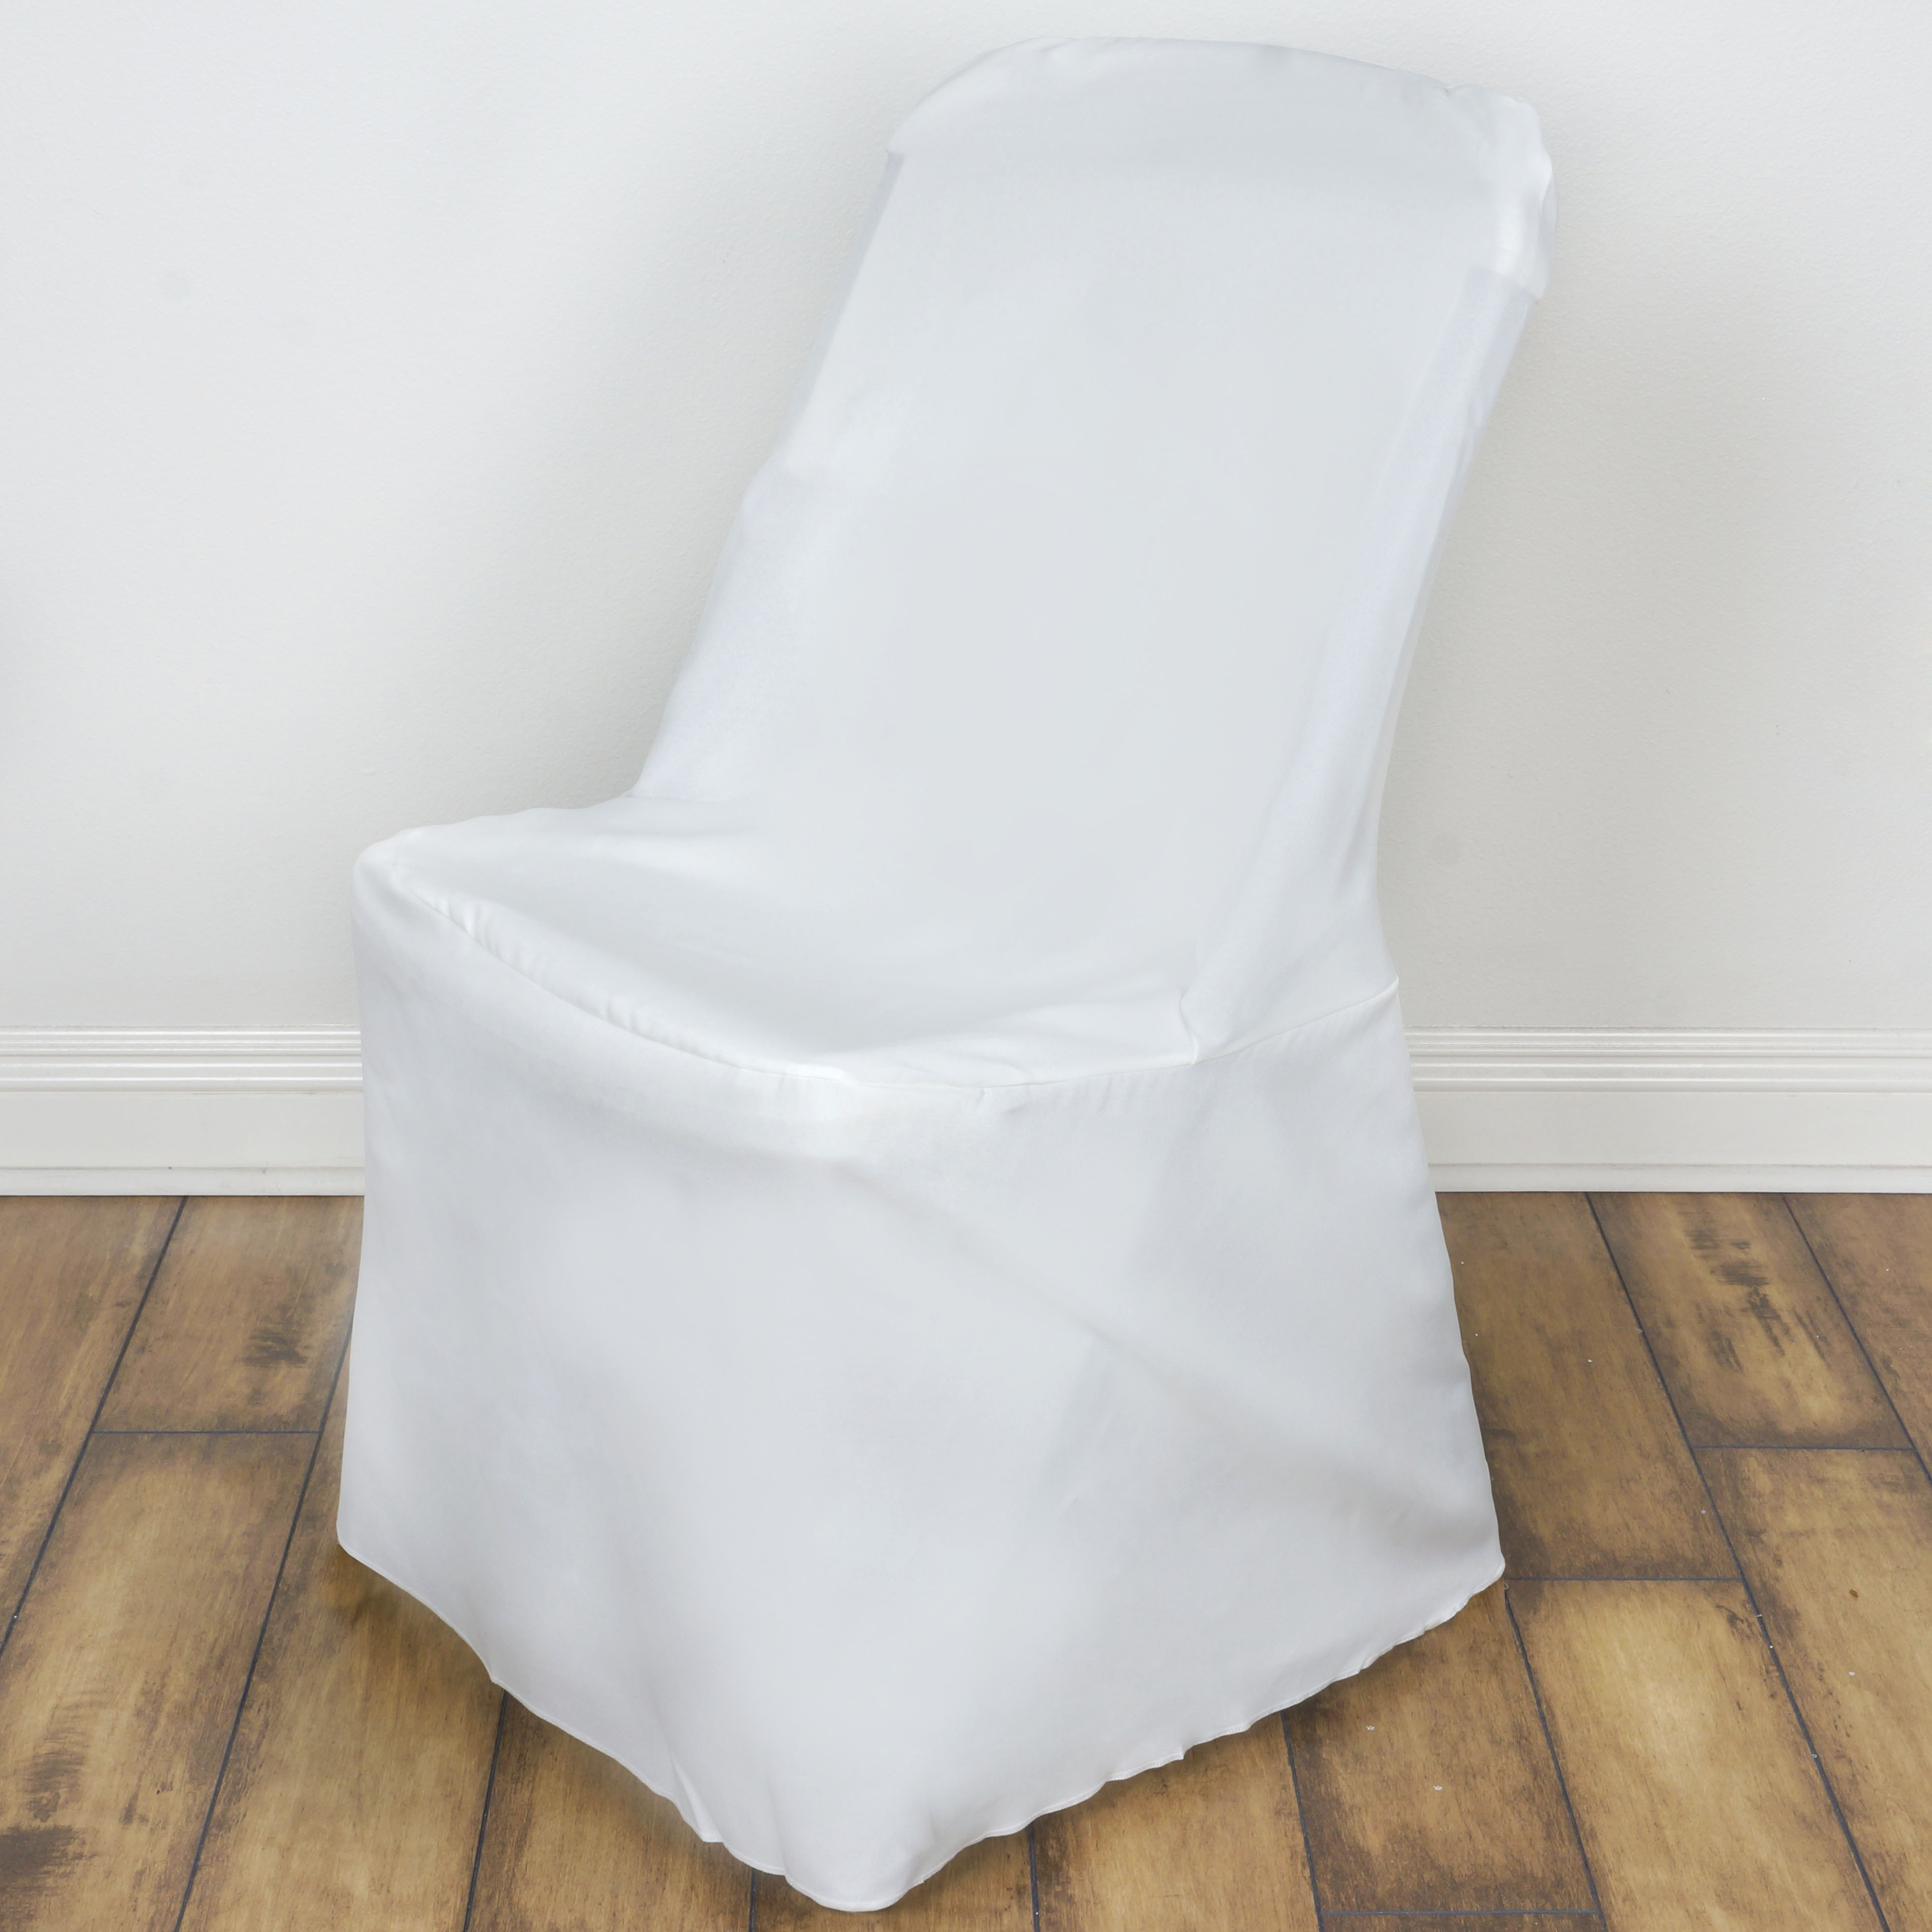 10 pcs LIFETIME Folding CHAIR COVERS Slipcovers Polyester Wedding Party Linen